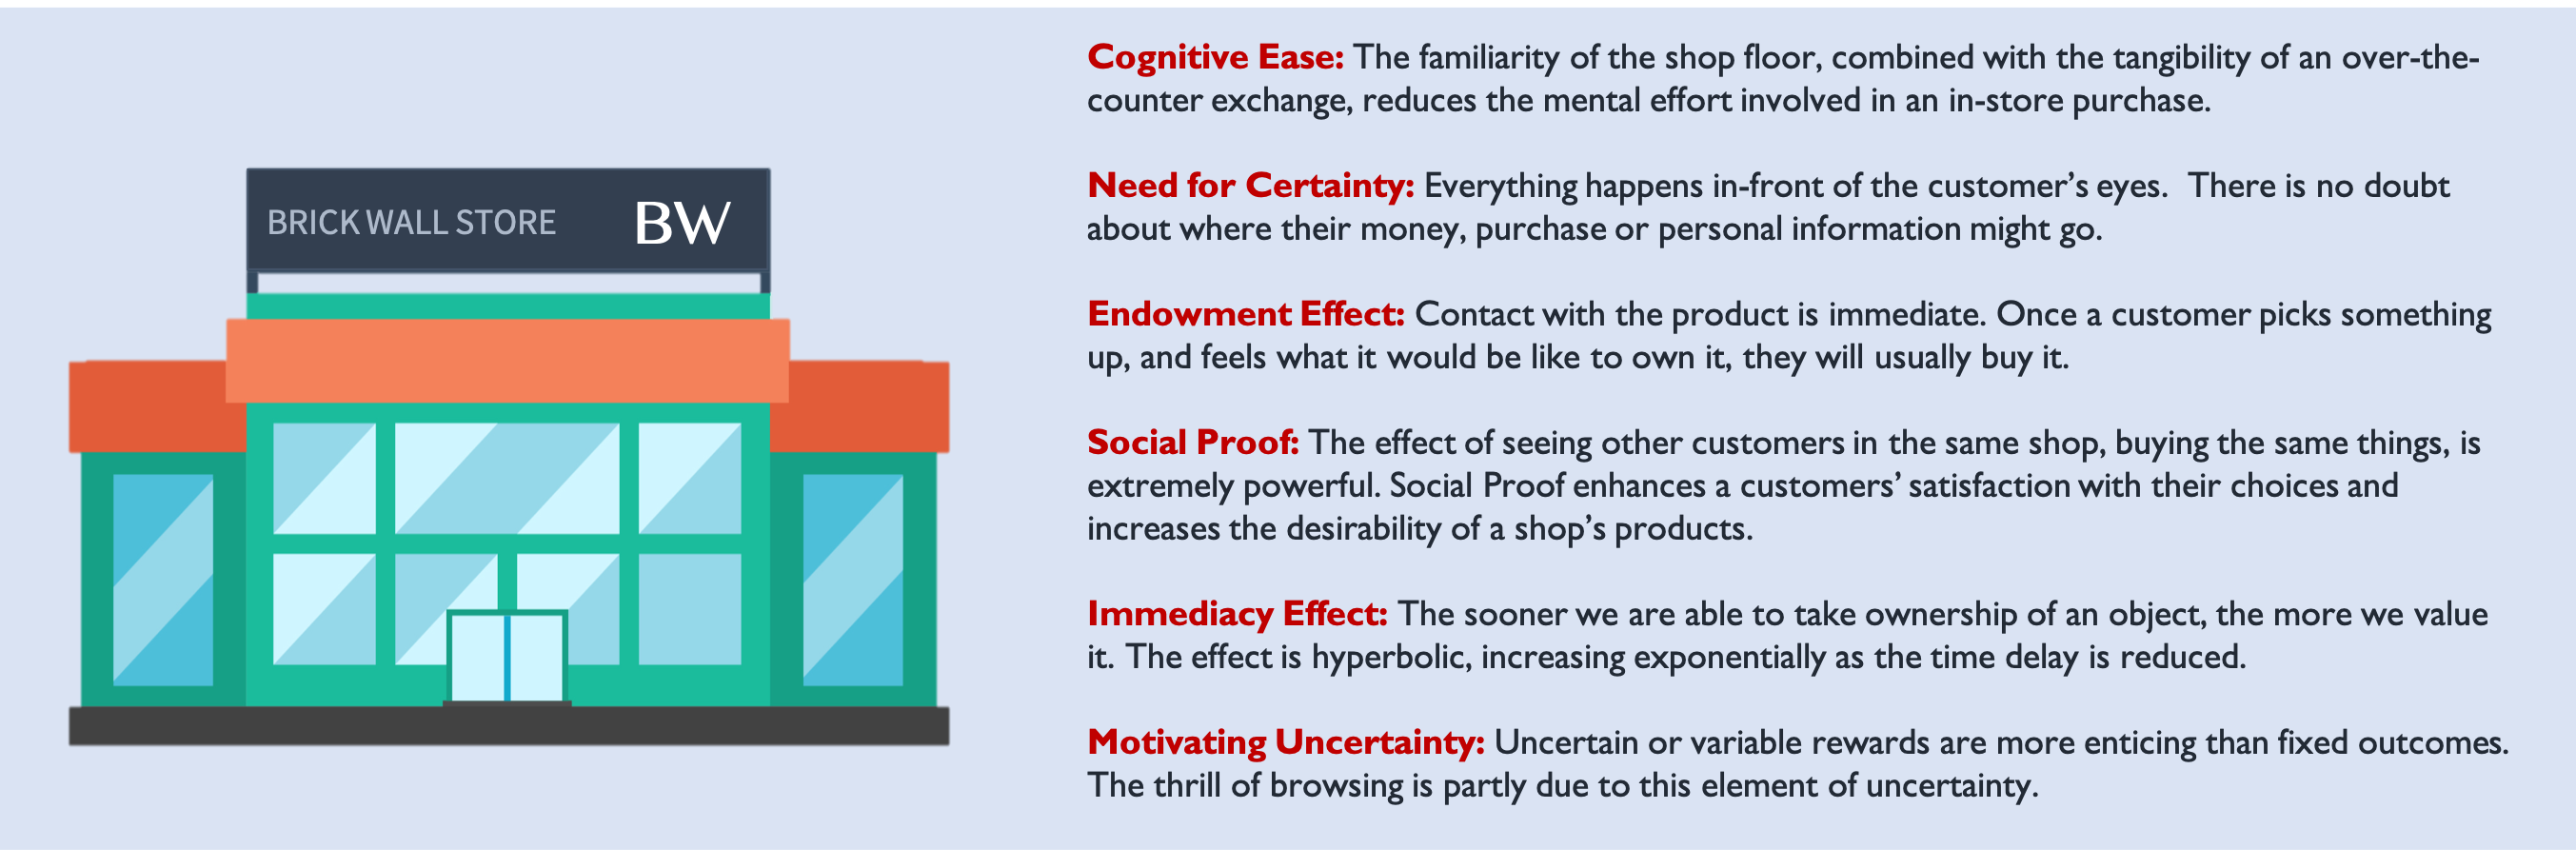 retail store psychological effects